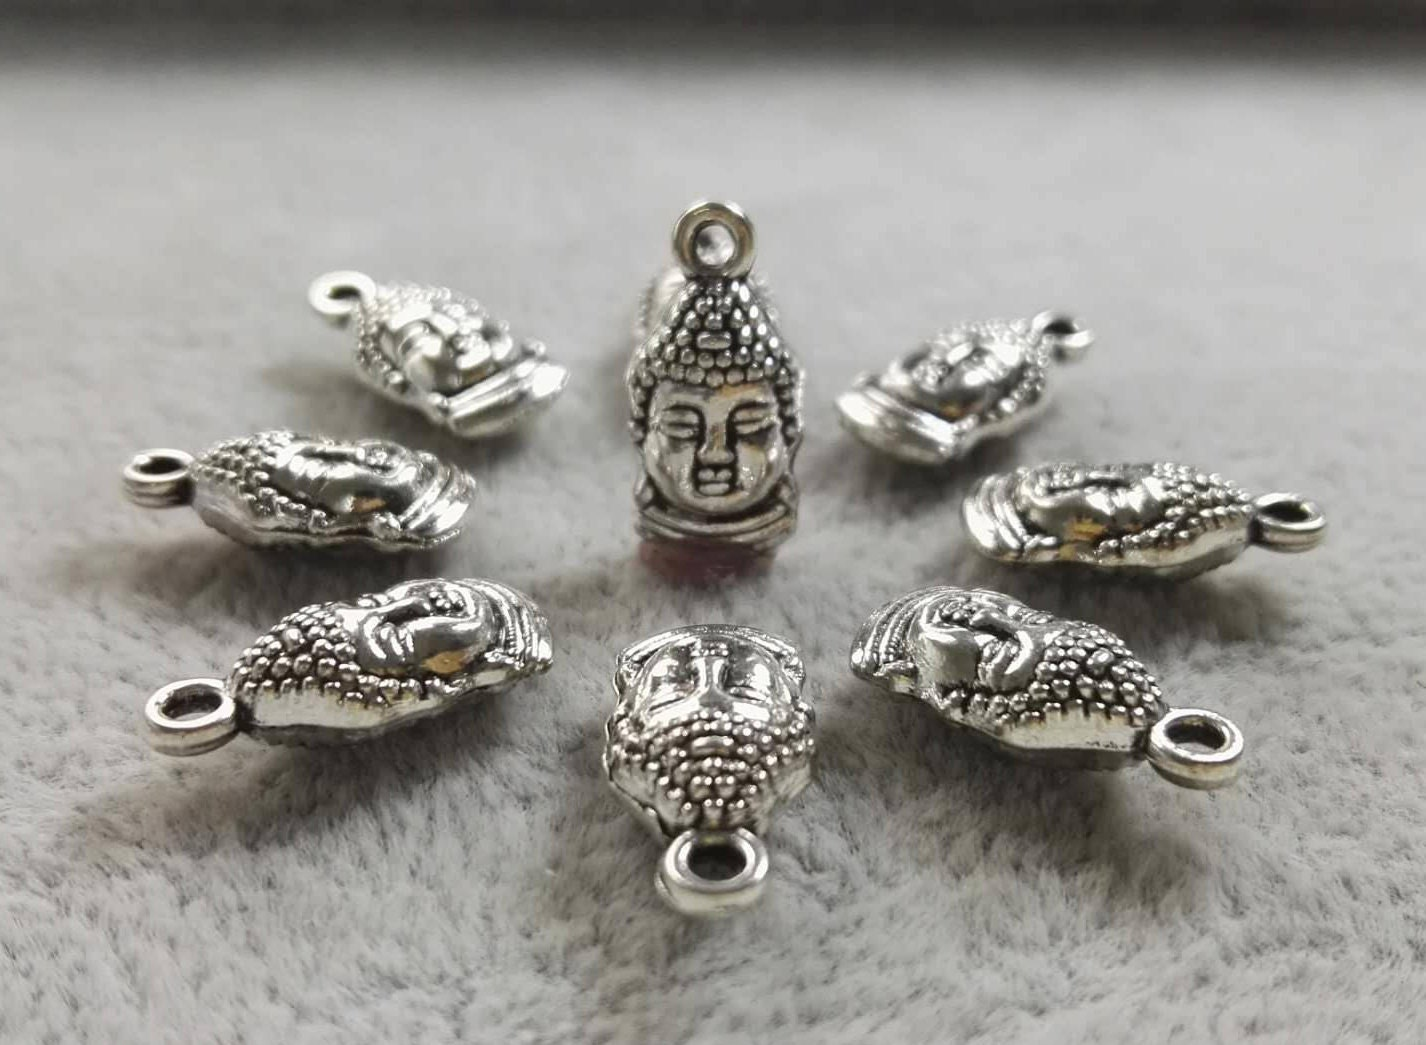 UK Seller Budha Charms x 5 Antique Silver Tone